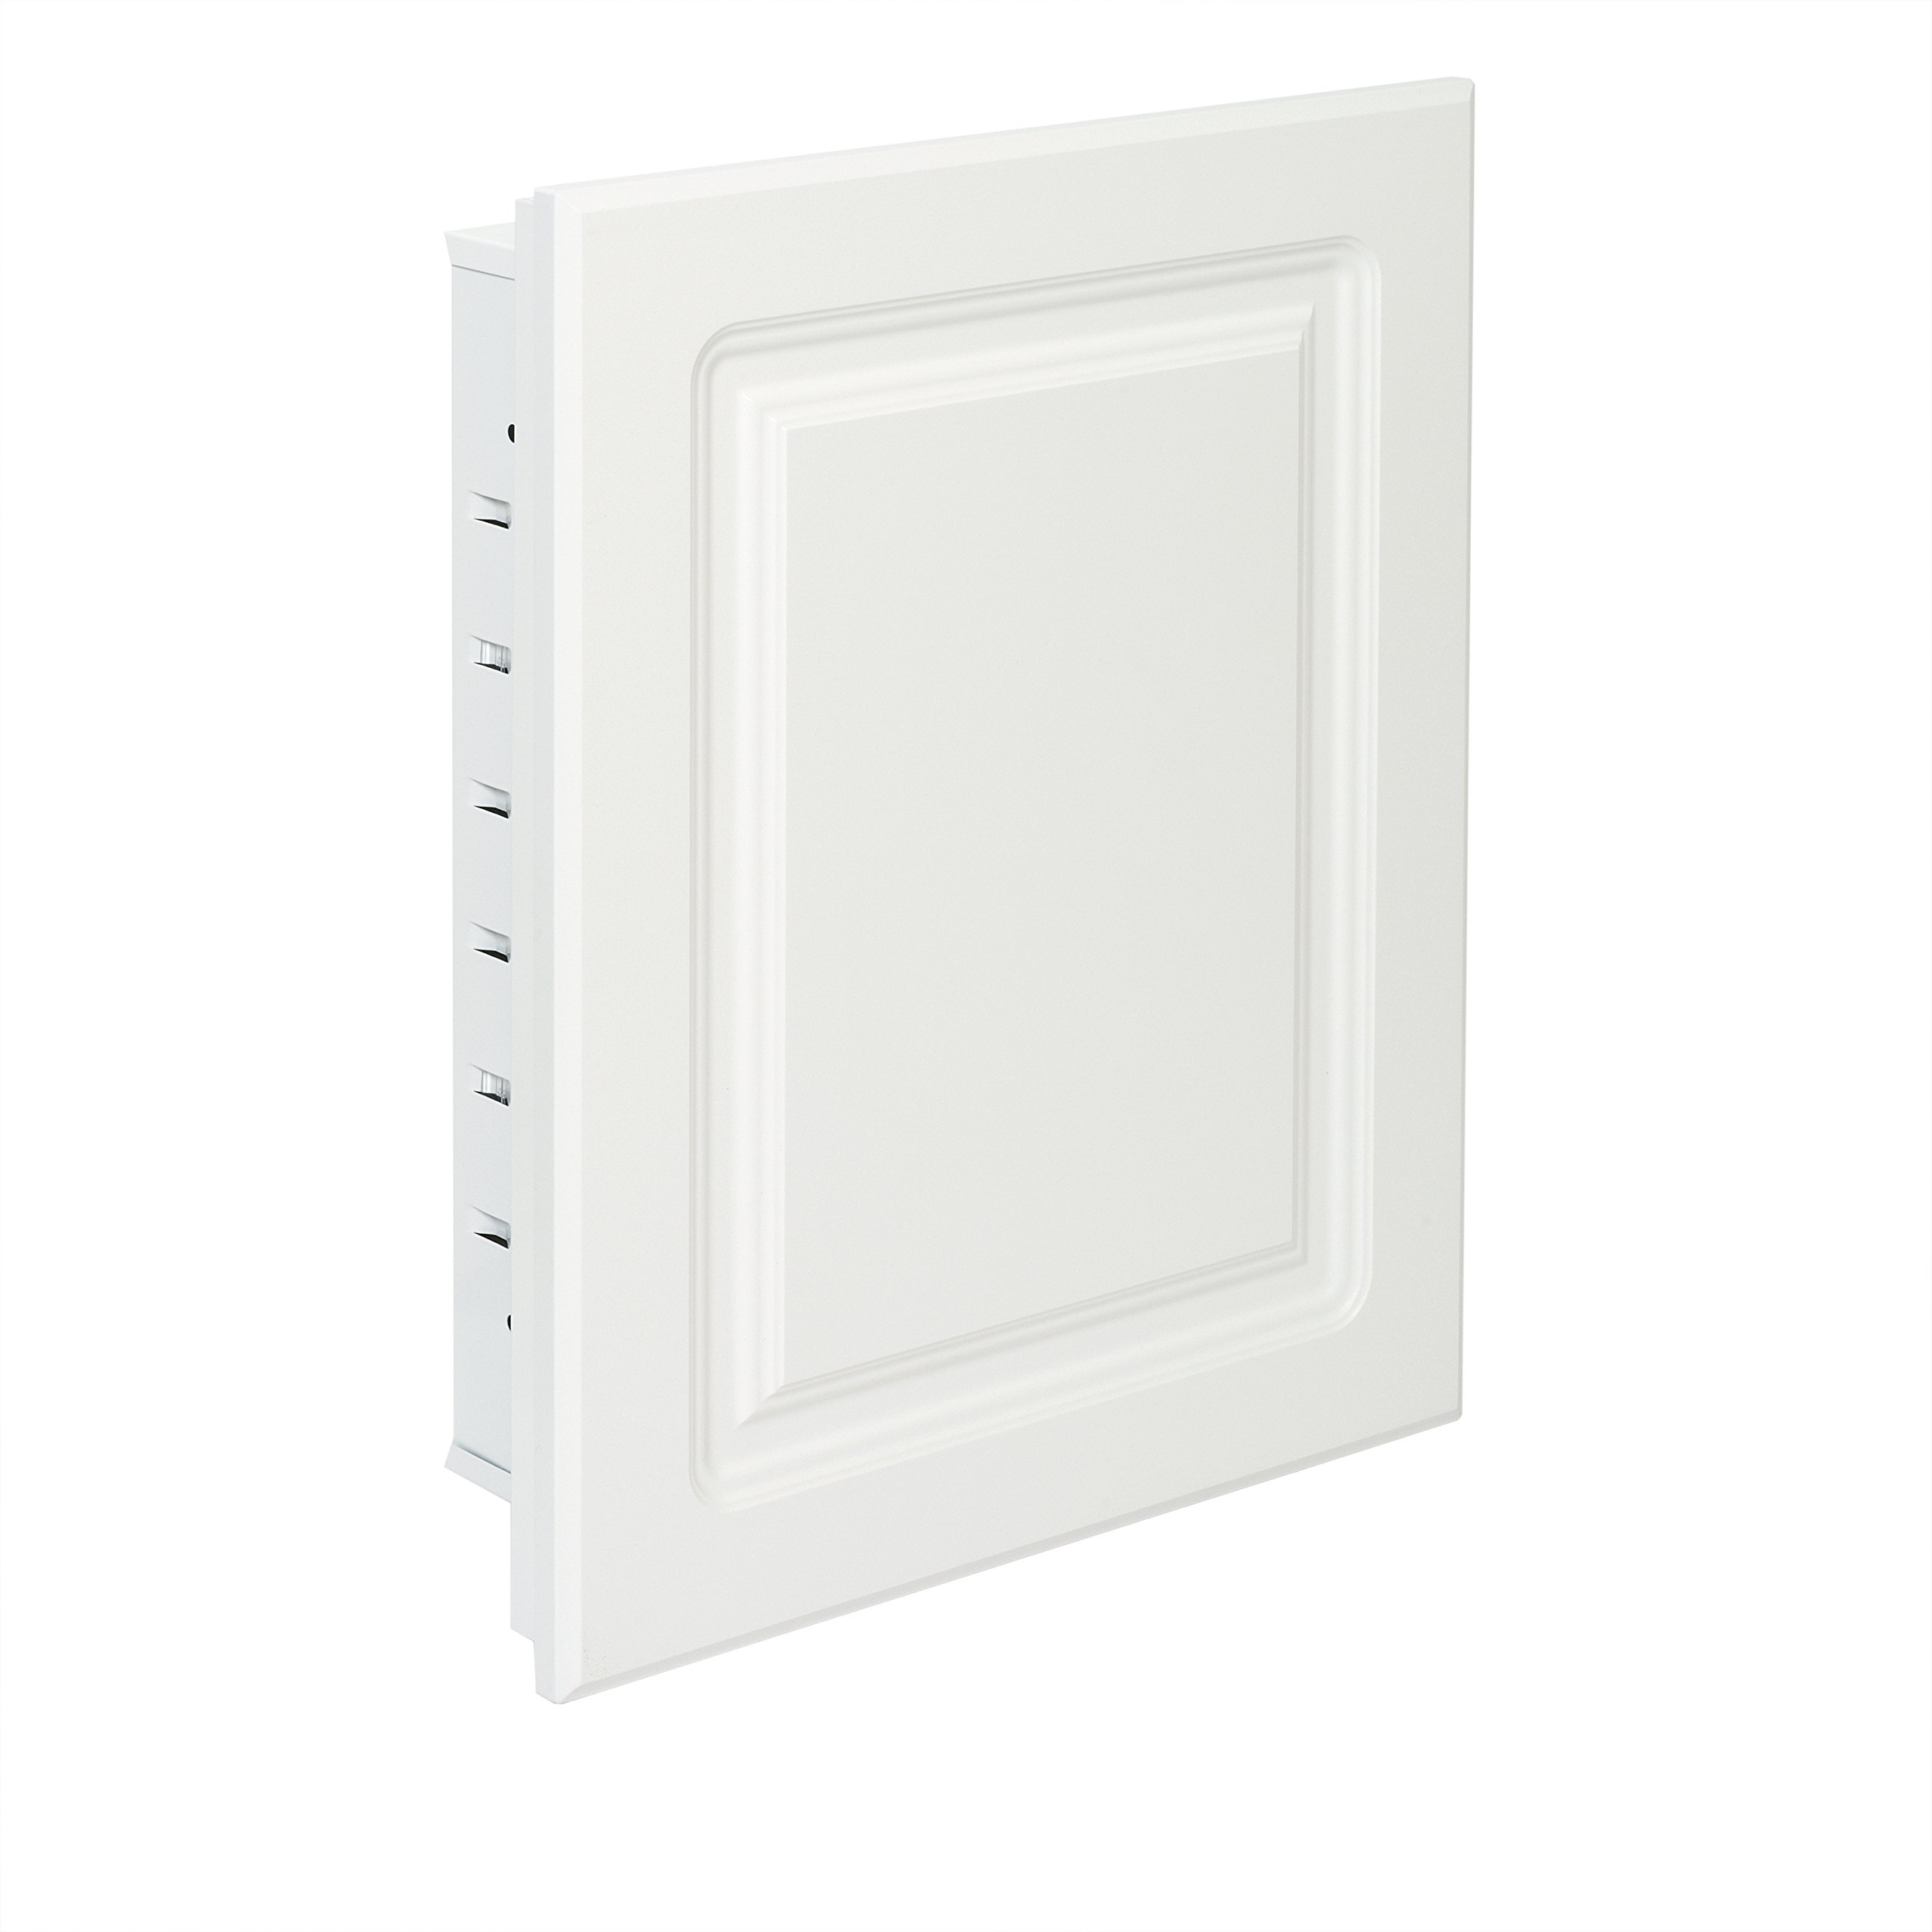 American Pride G9612RPR1 Recessed White Raised Panel Door with Steel Body Medicine Cabinet, 16 x 20''